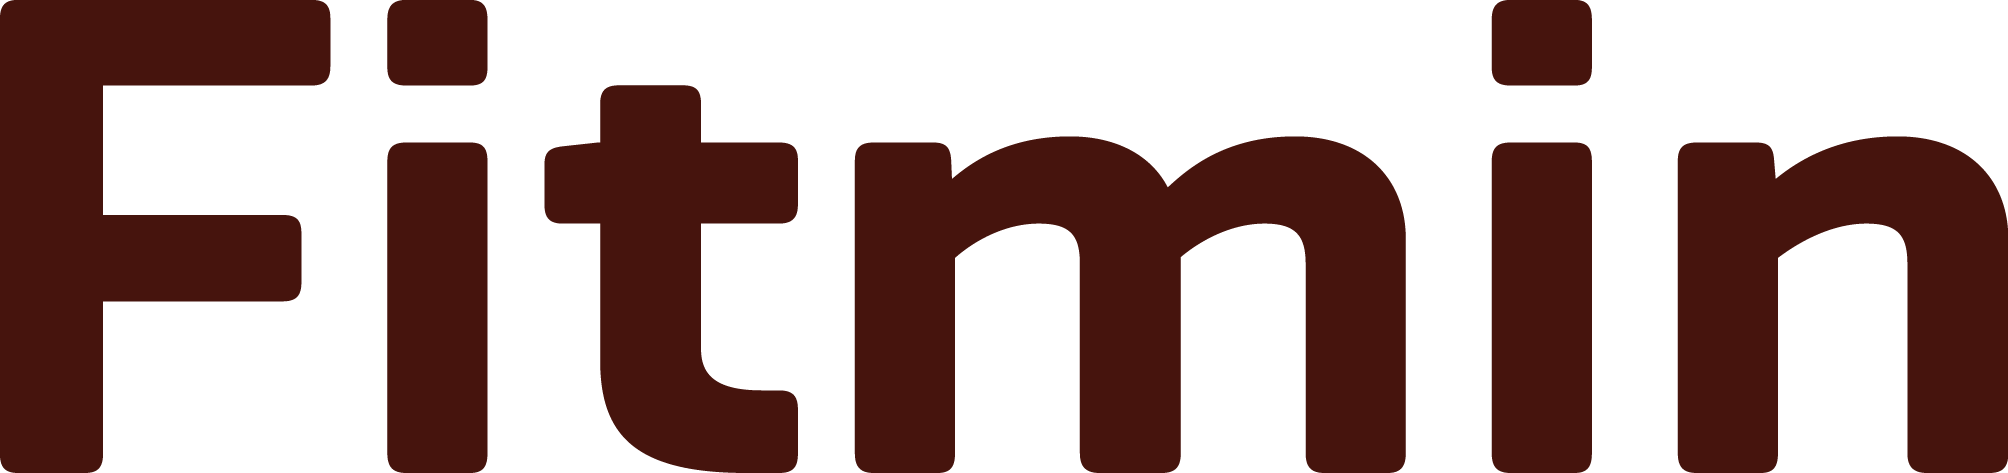 Fitmn-logo-Brown_PNG